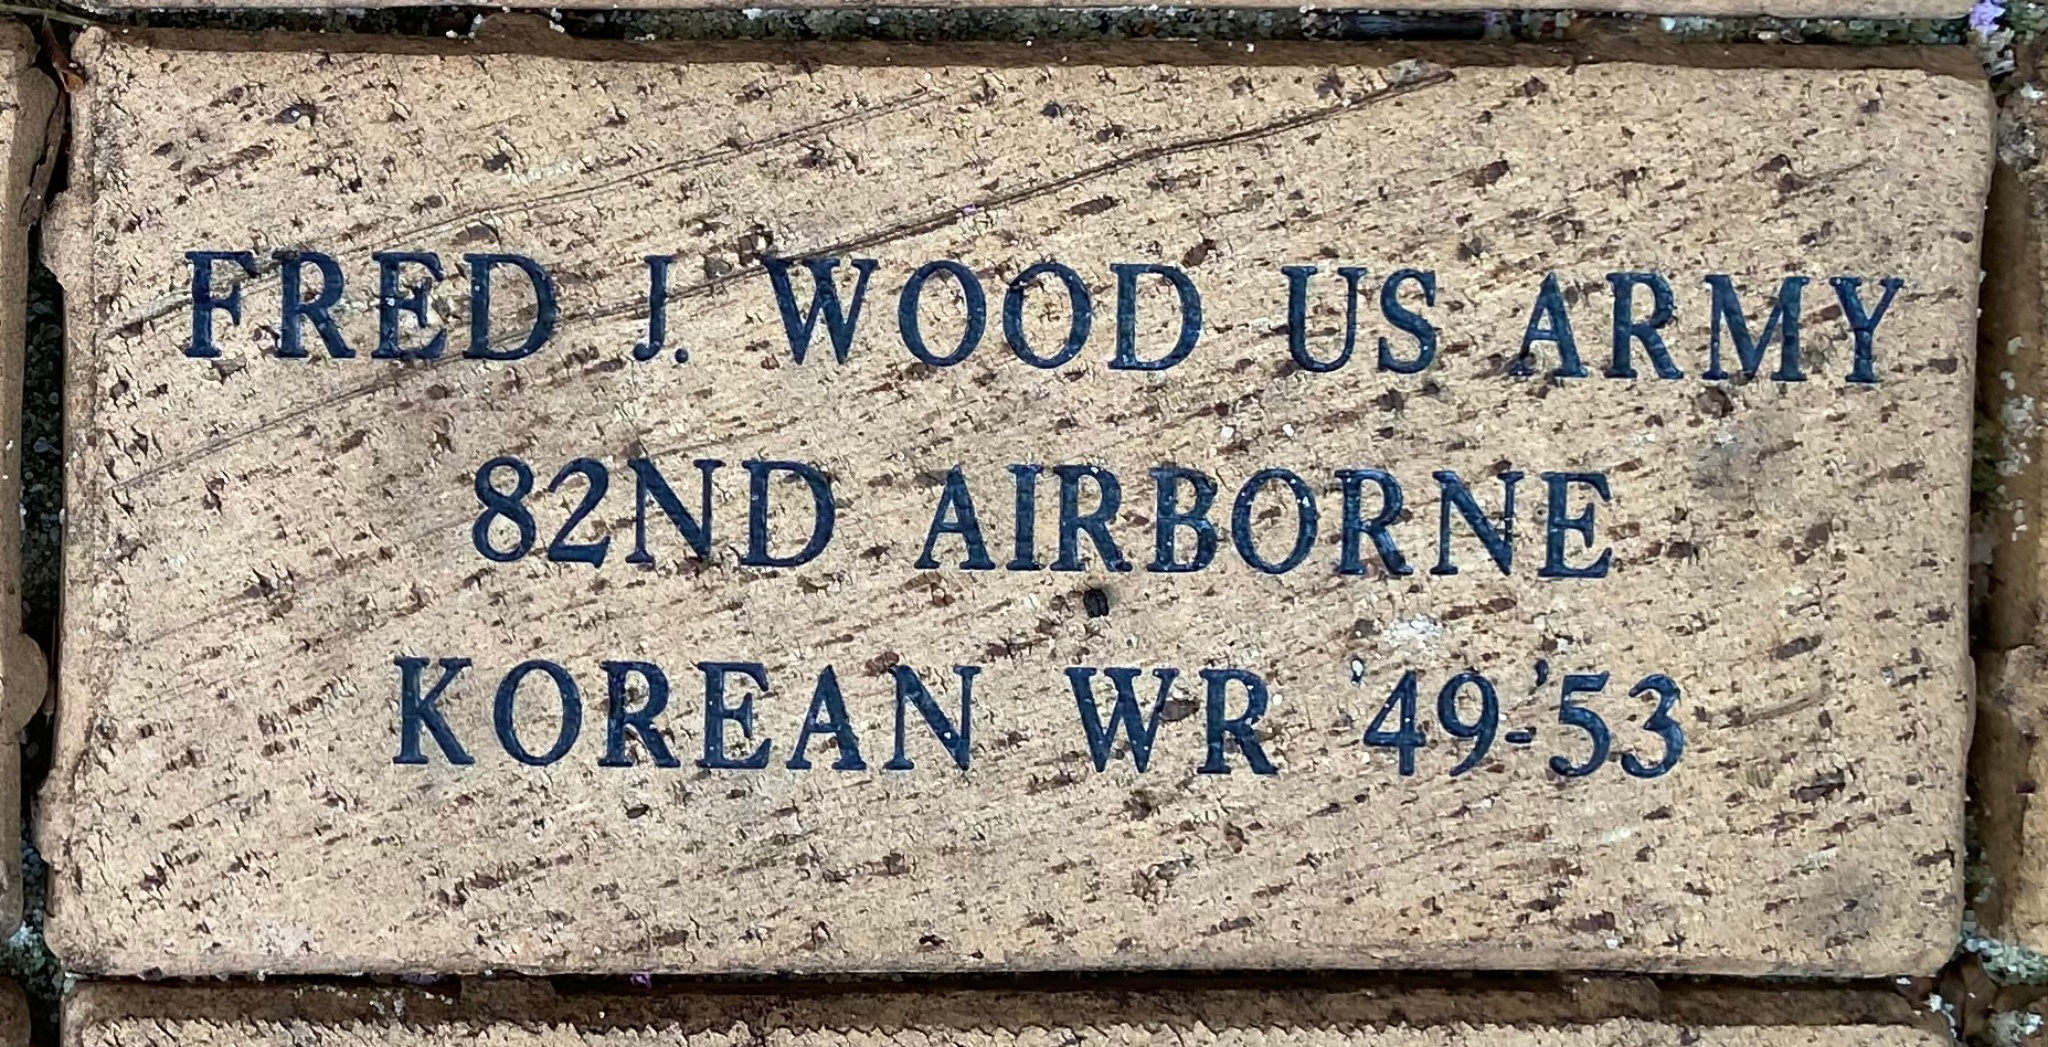 FRED J. WOOD US ARMY 82ND AIRBORNE KOREAN WR '49-'53